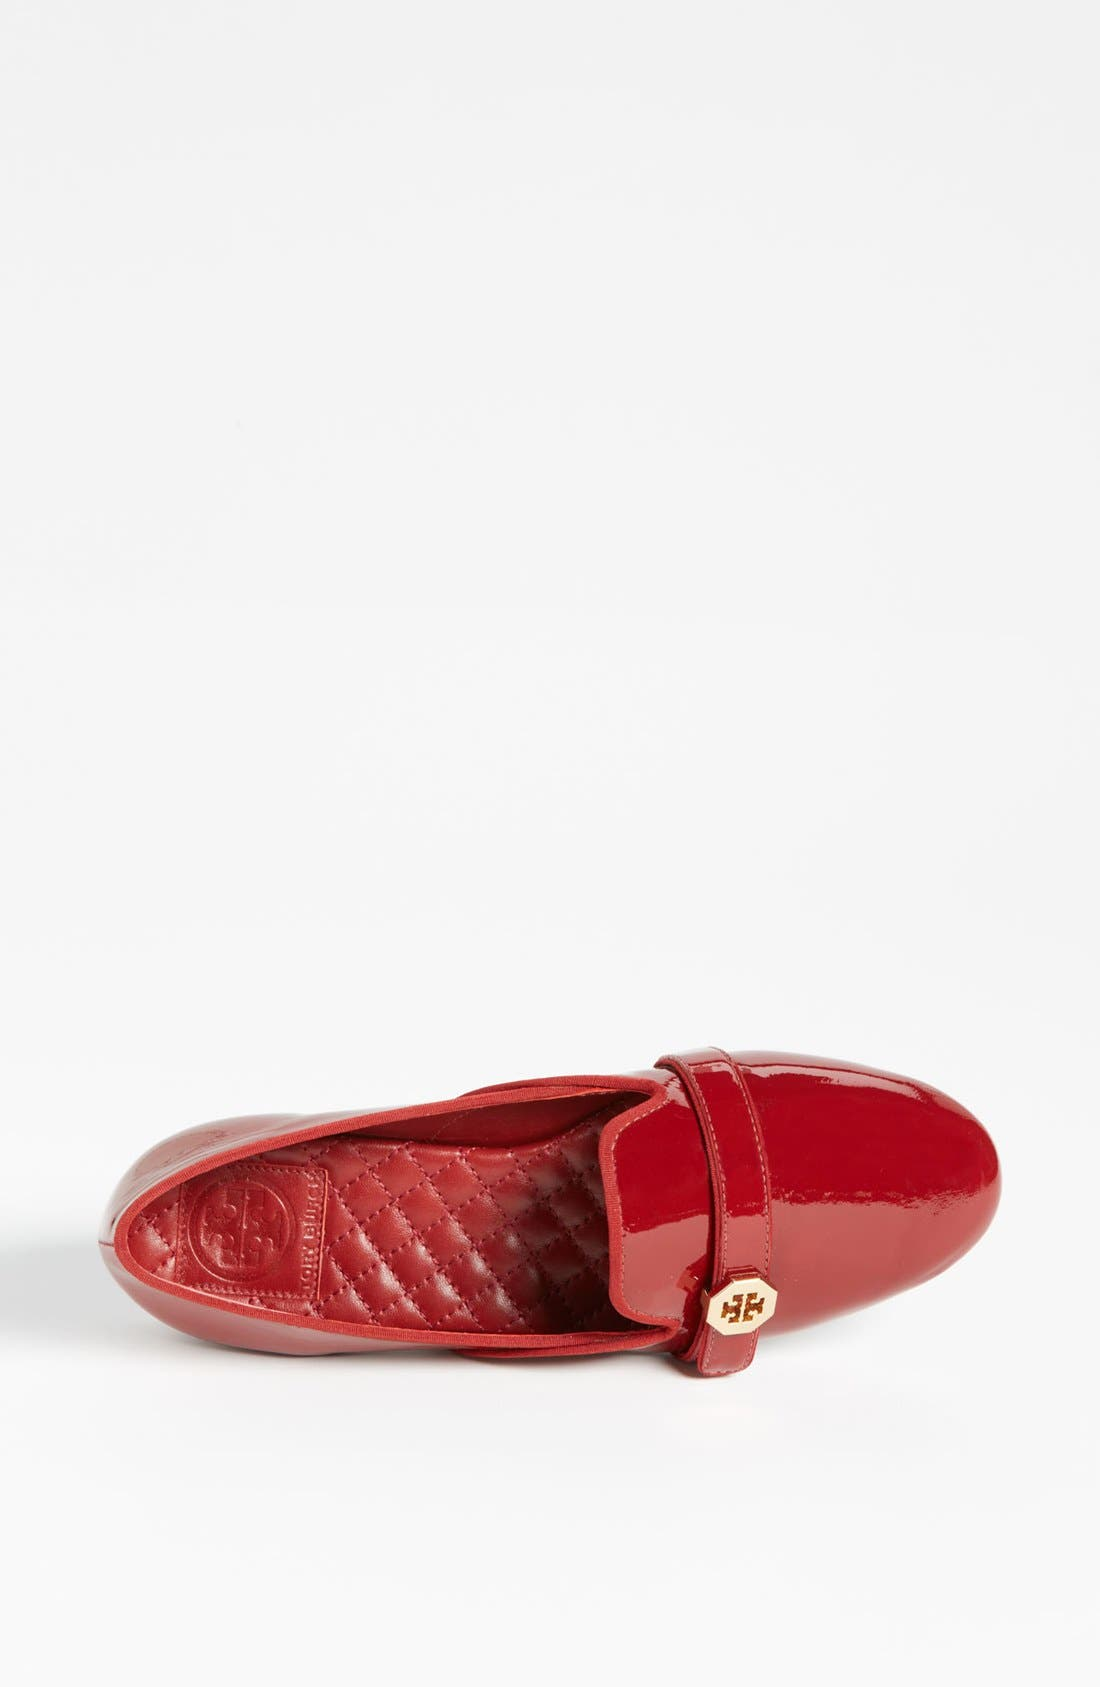 Alternate Image 3  - Tory Burch Smoking Slipper